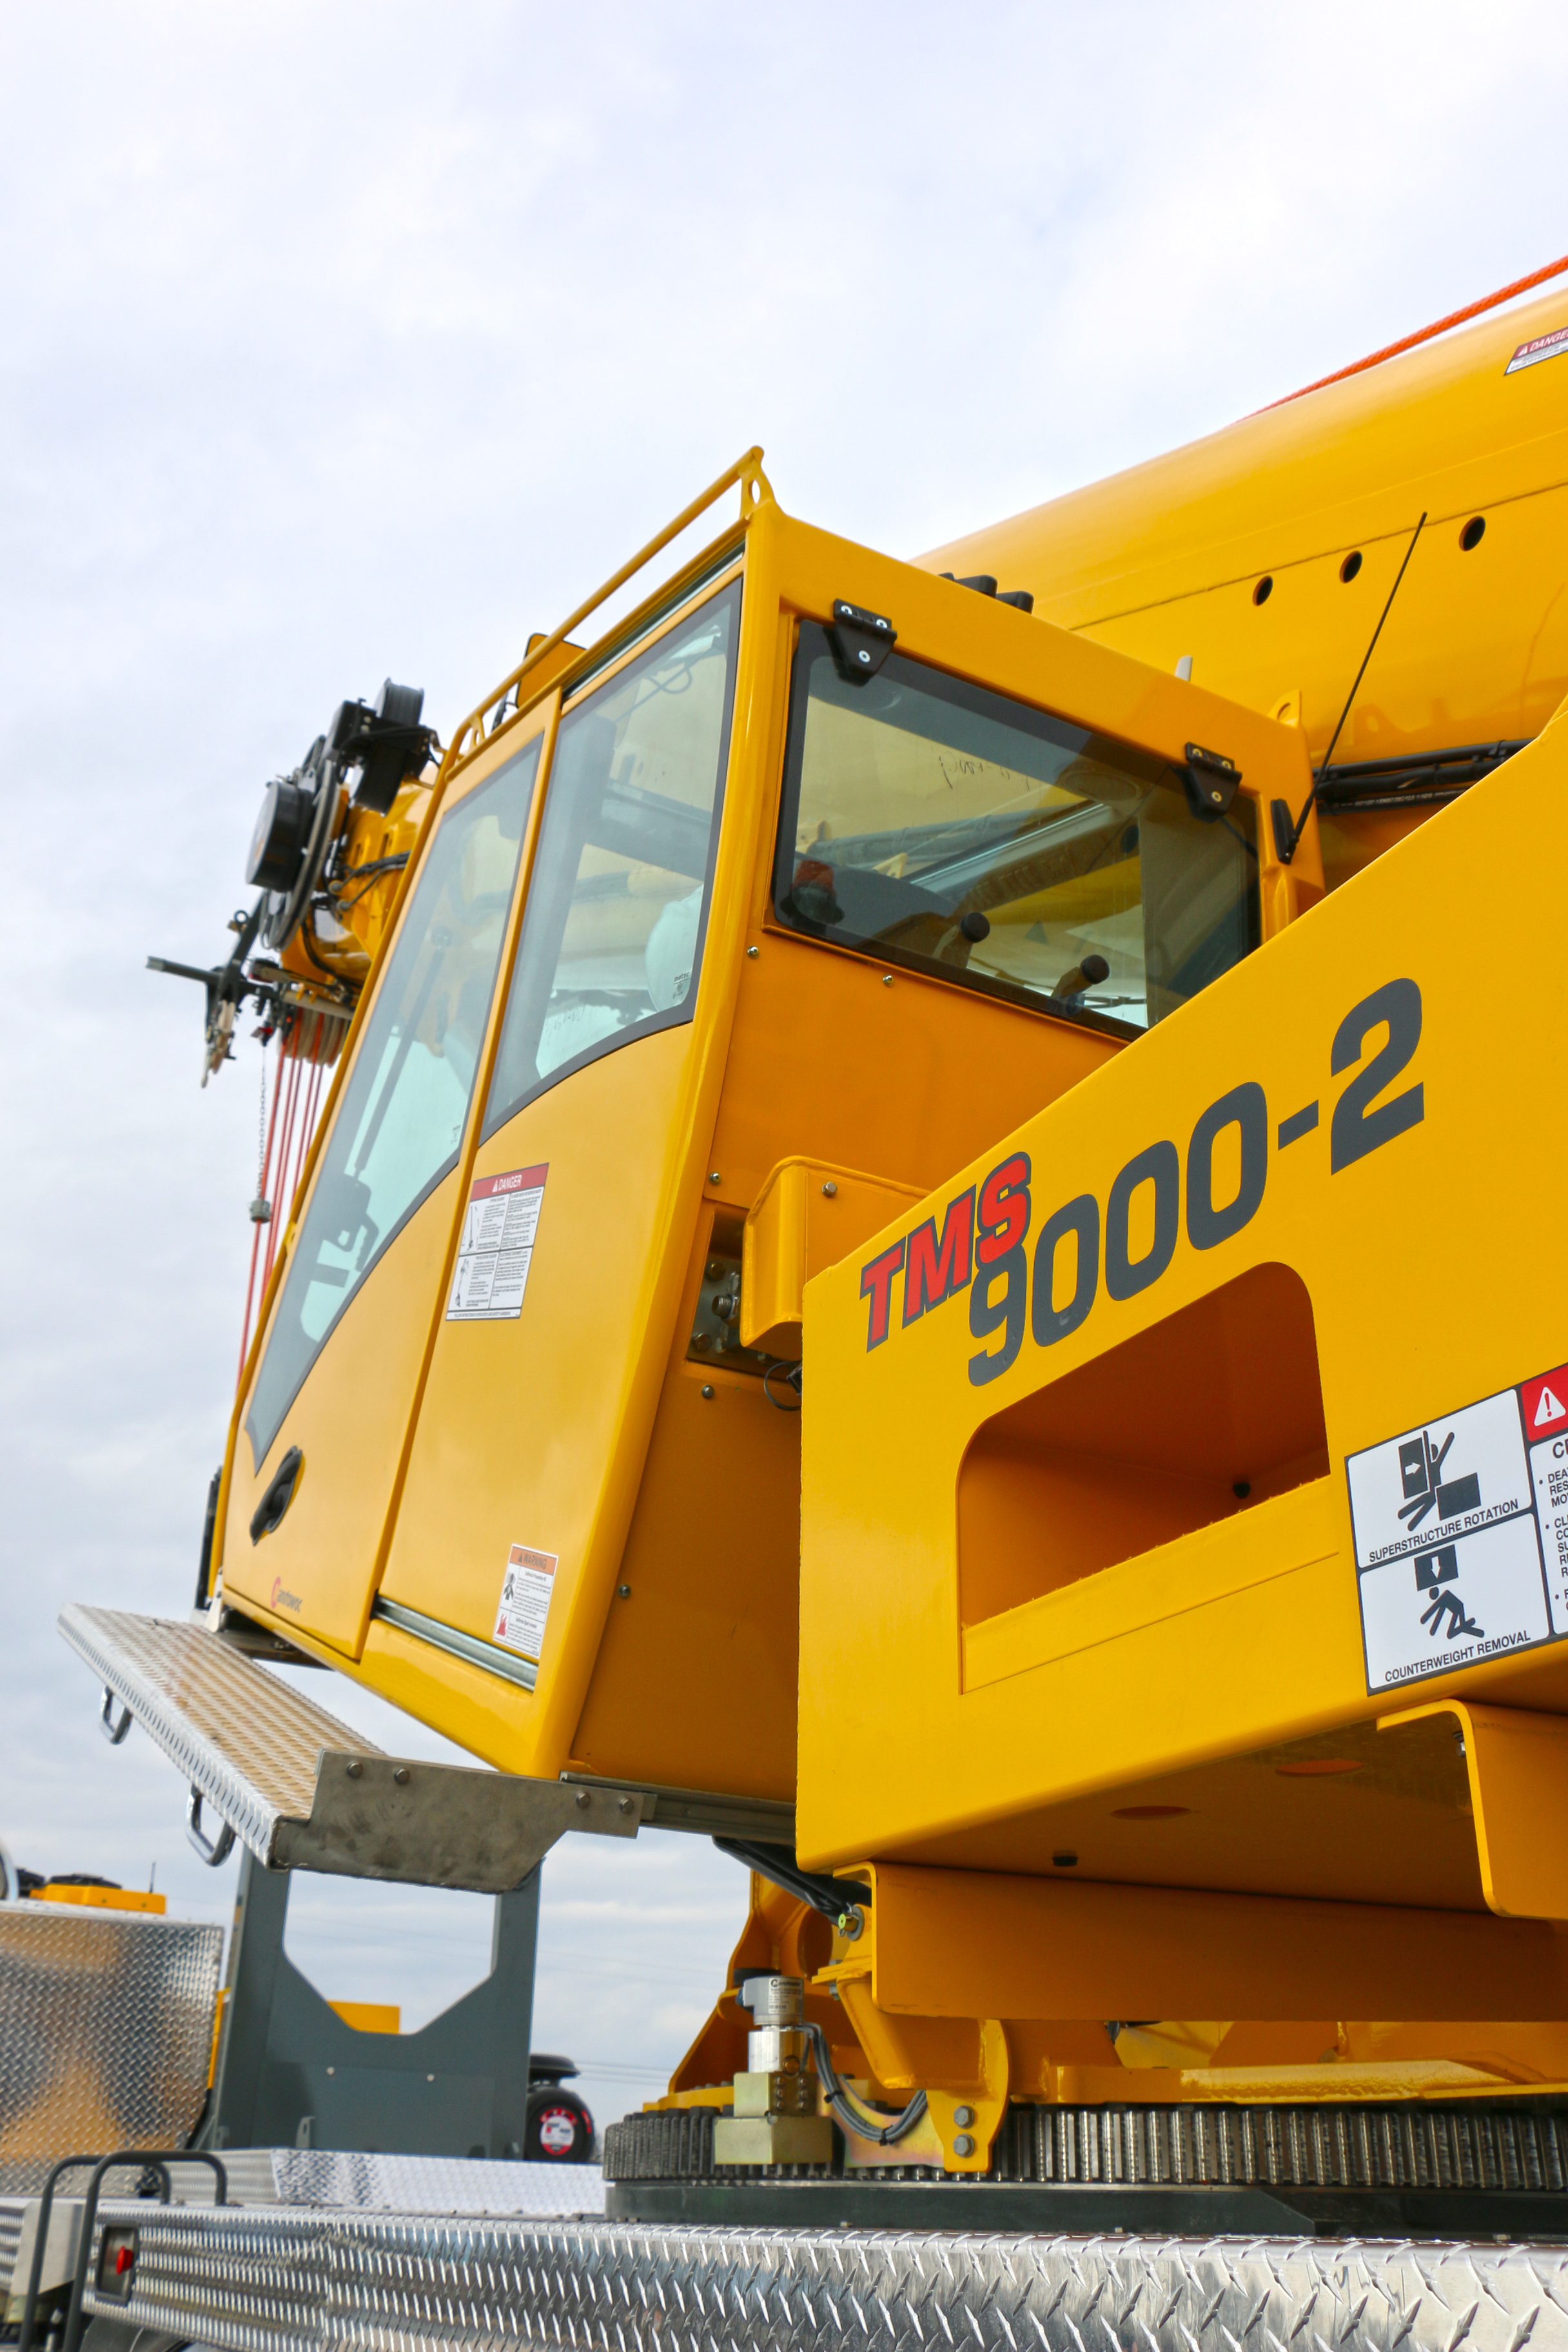 Lighter, longer, stronger. This was the mantra as Grove developed the TMS9000-2, its next-generation truck crane, which has just been unveiled.